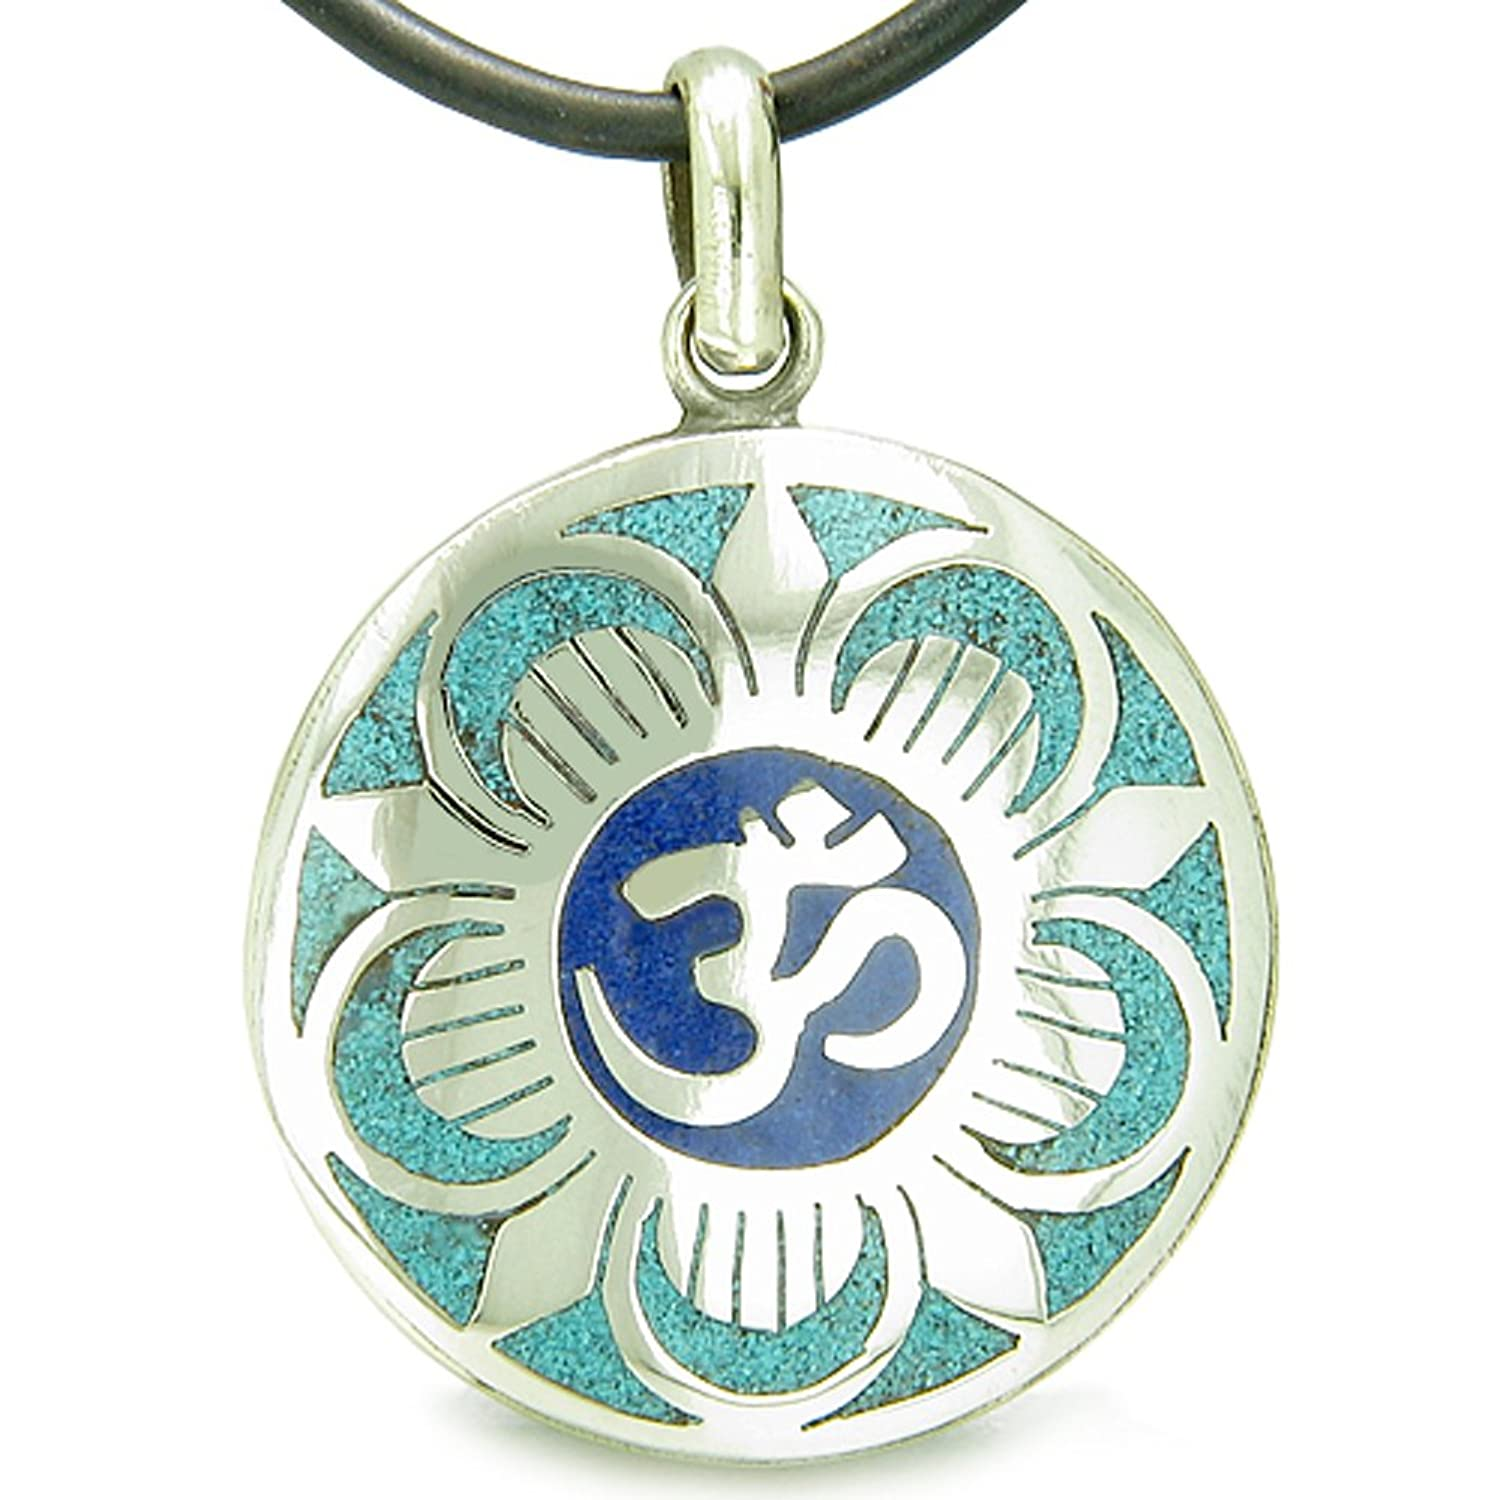 Amazon amulet ancient om and magic lotus tibetan symbol amazon amulet ancient om and magic lotus tibetan symbol mosaic medallion pendant on leather cord necklace jewelry biocorpaavc Gallery